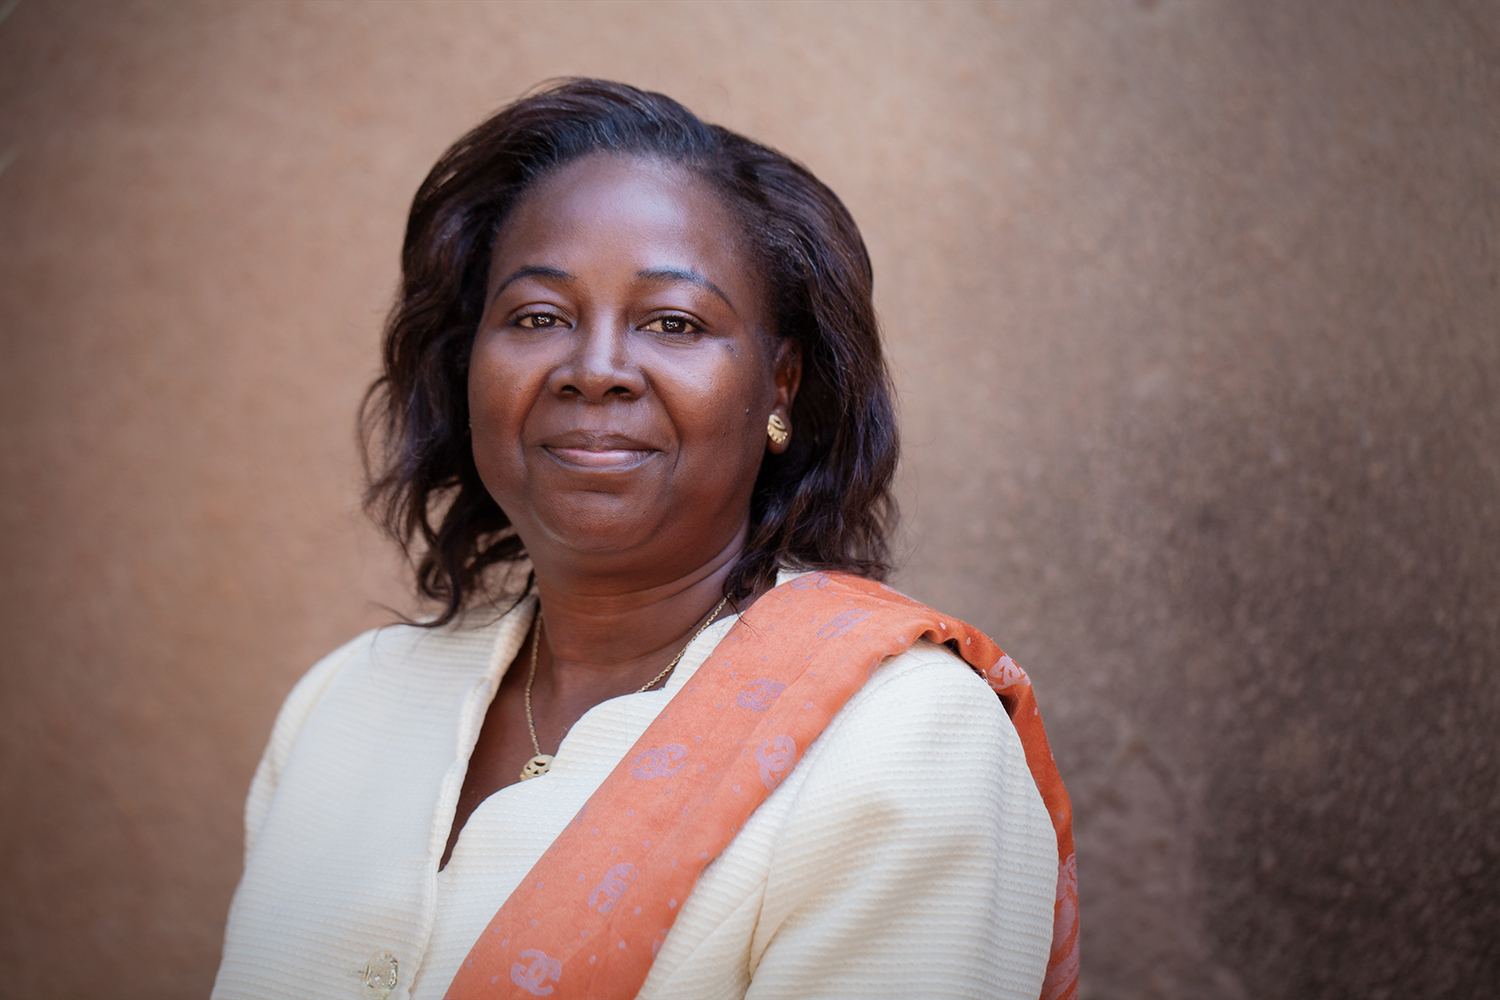 Hortence Lougué photographed by Leila Alaoui in Ouagadougou, Burkina Faso, on 12 January 2016, as part of the My Body My Rights campaign. Her organisation, Association d'appui et d'eveil PUGSADA, works on issues around gender-based violence, education and human rights. She works with young girls and women who have been forced into marriage, including at a very young age, and female genital mutilation. Her organisation currently has projects to support the education of girls who face early and forced marriage.